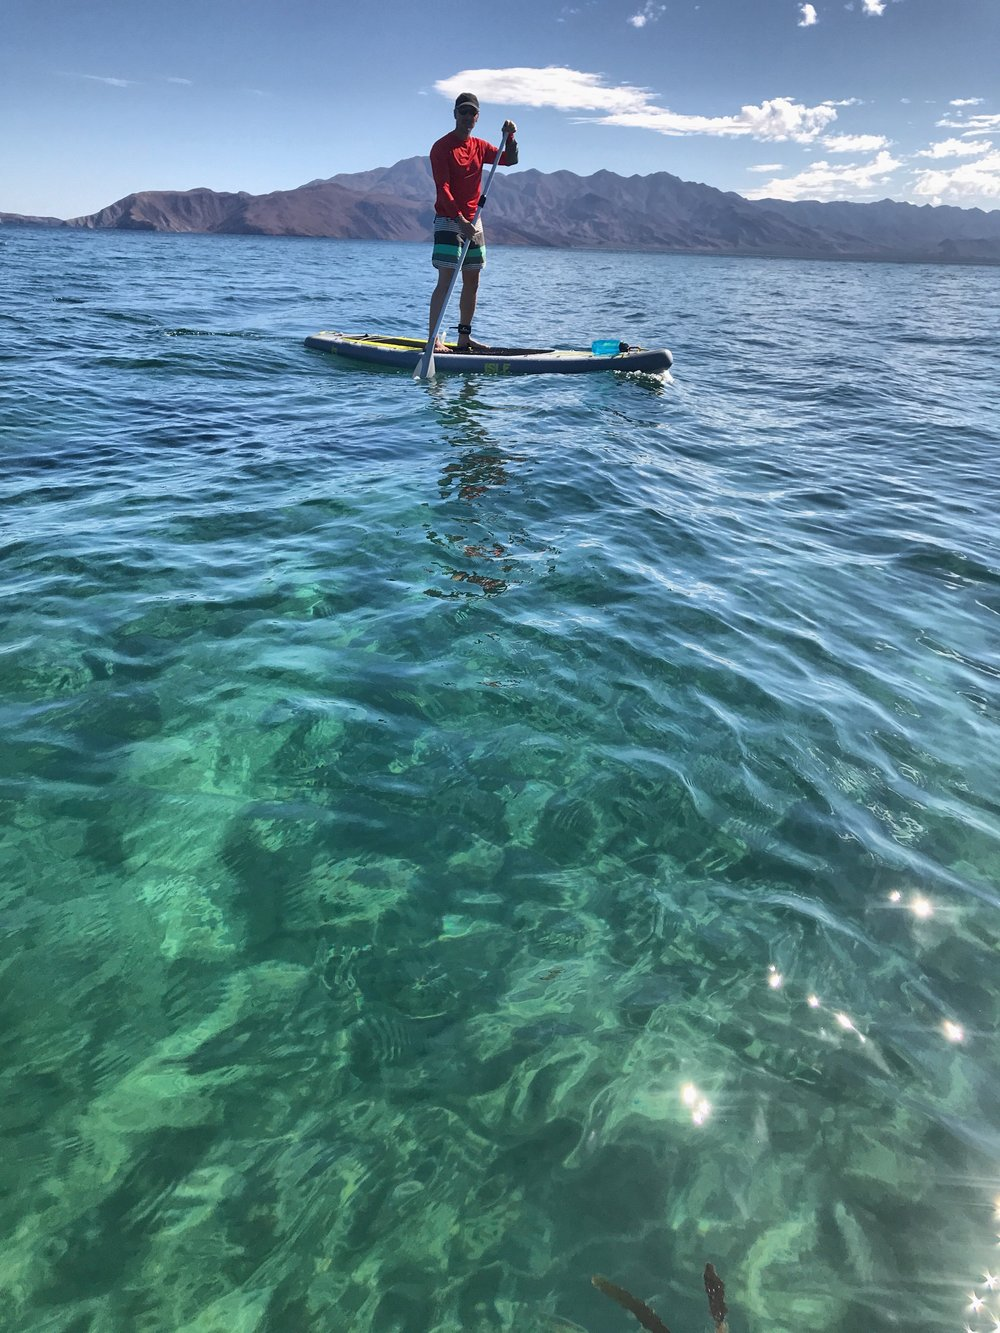 The Sea of Cortez and her sultry green waters. We paddled for hours watching dolphins, sea turtles, sting rays, and tons of fish.